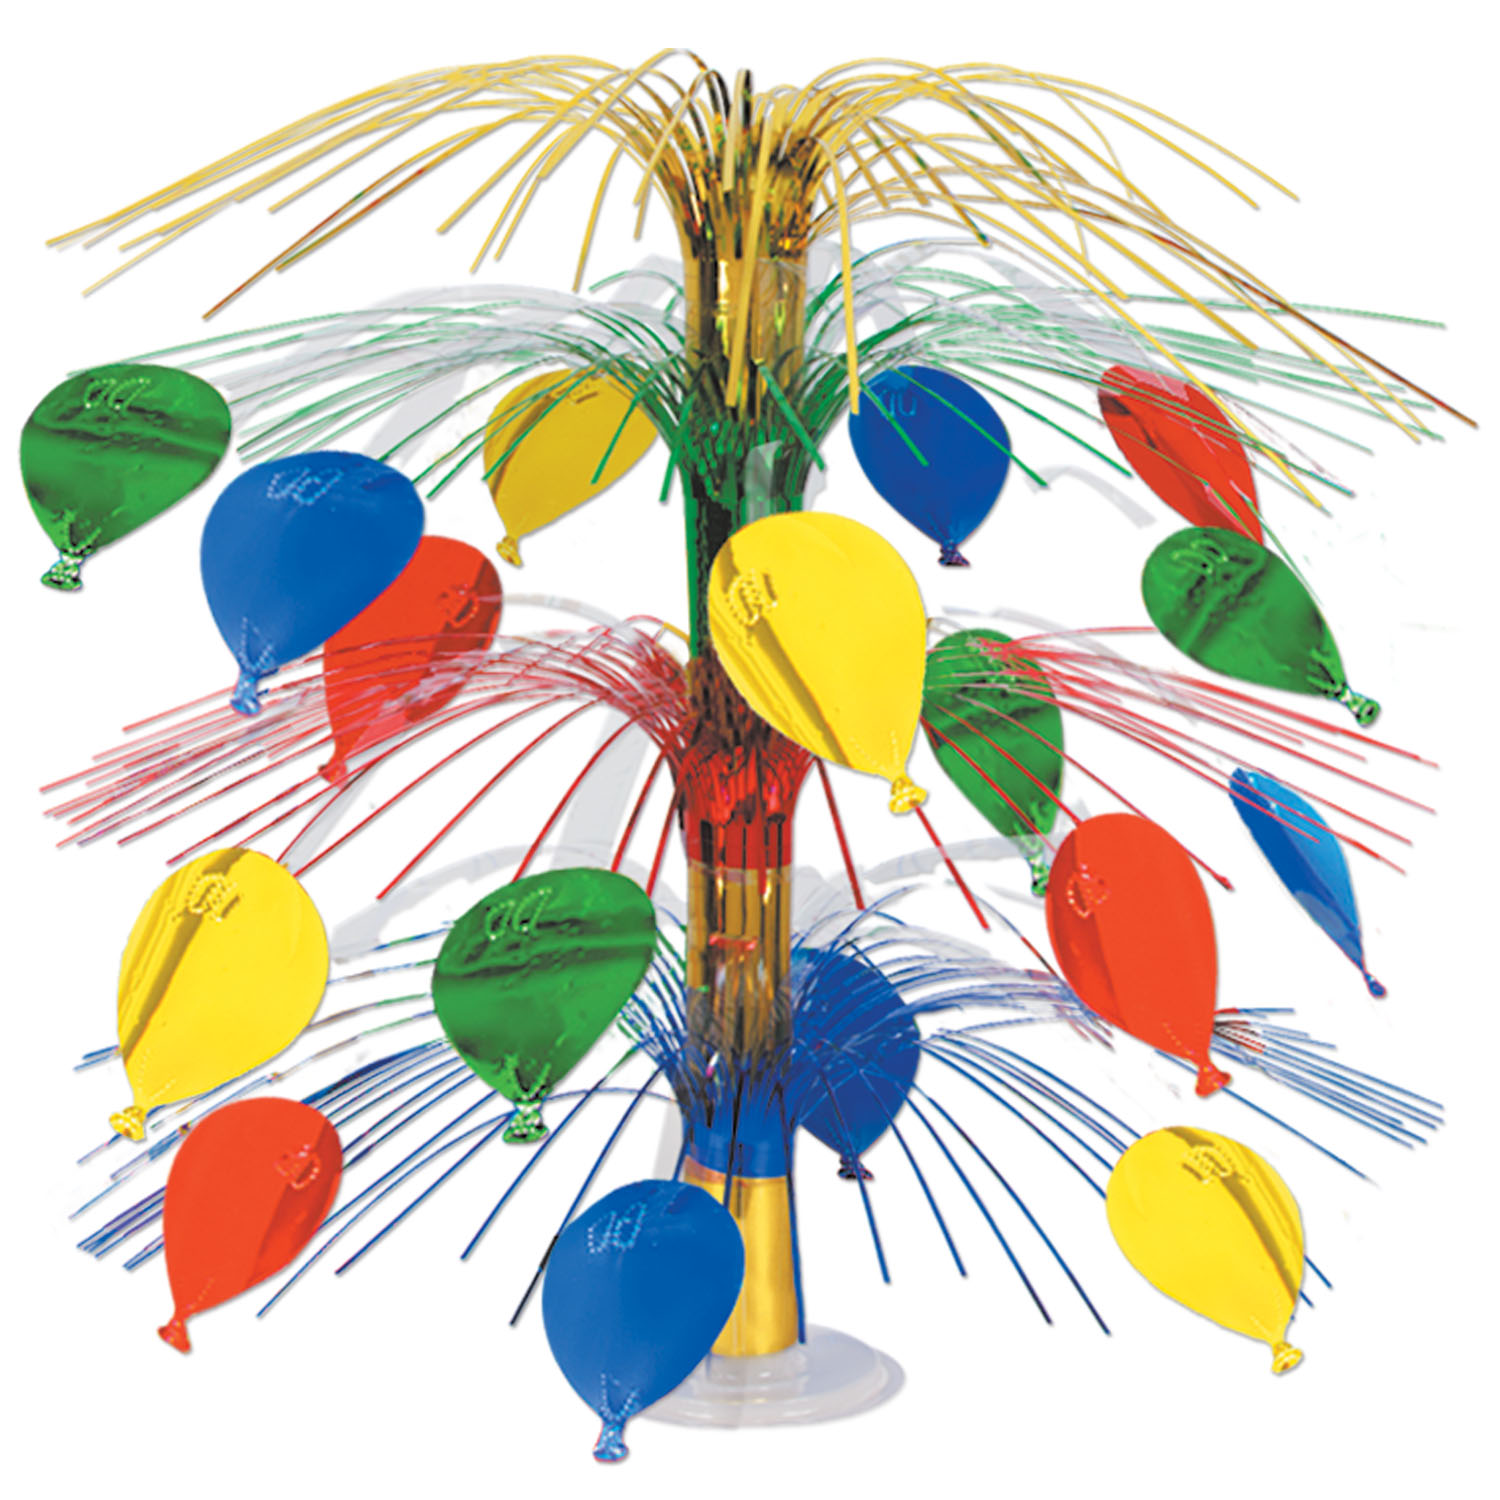 Balloon Cascade Centerpiece (6 per pack) Balloon Cascade Centerpiece, multi-color, birthday, new years eve, wholesale, decoration, inexpensive, bulk